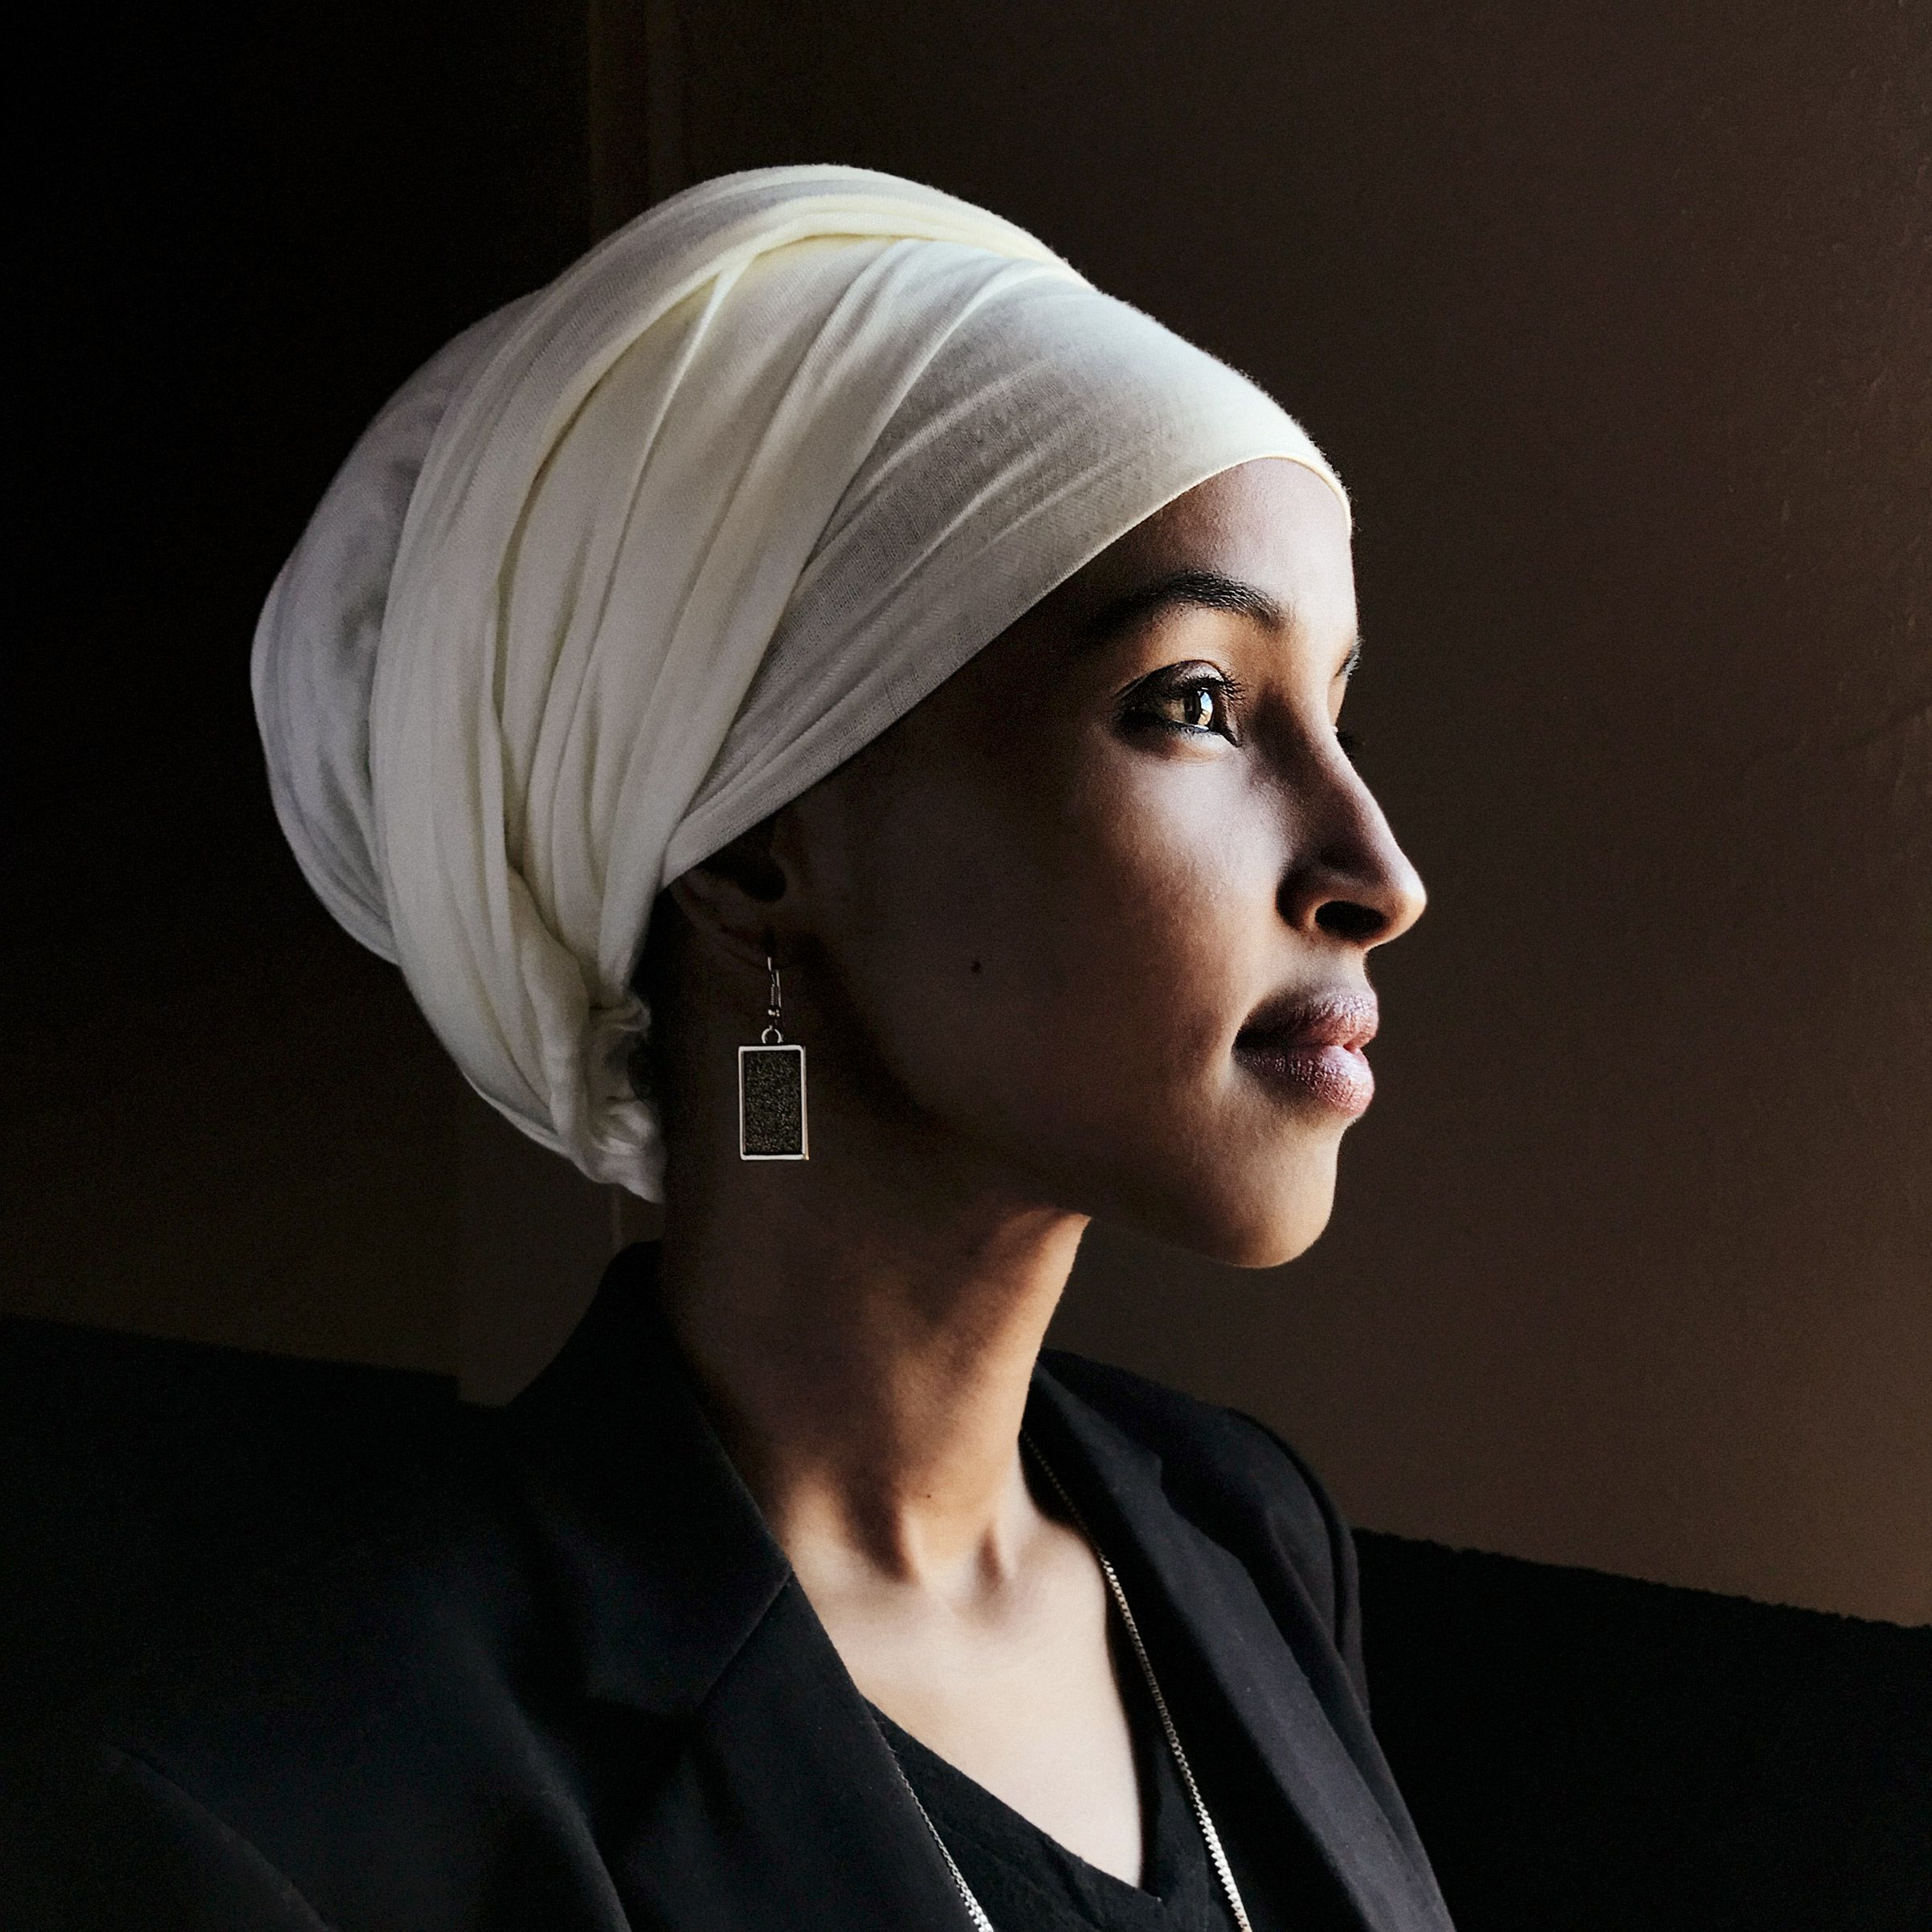 Ilhan Omar: The First Somali-American Muslim Perso